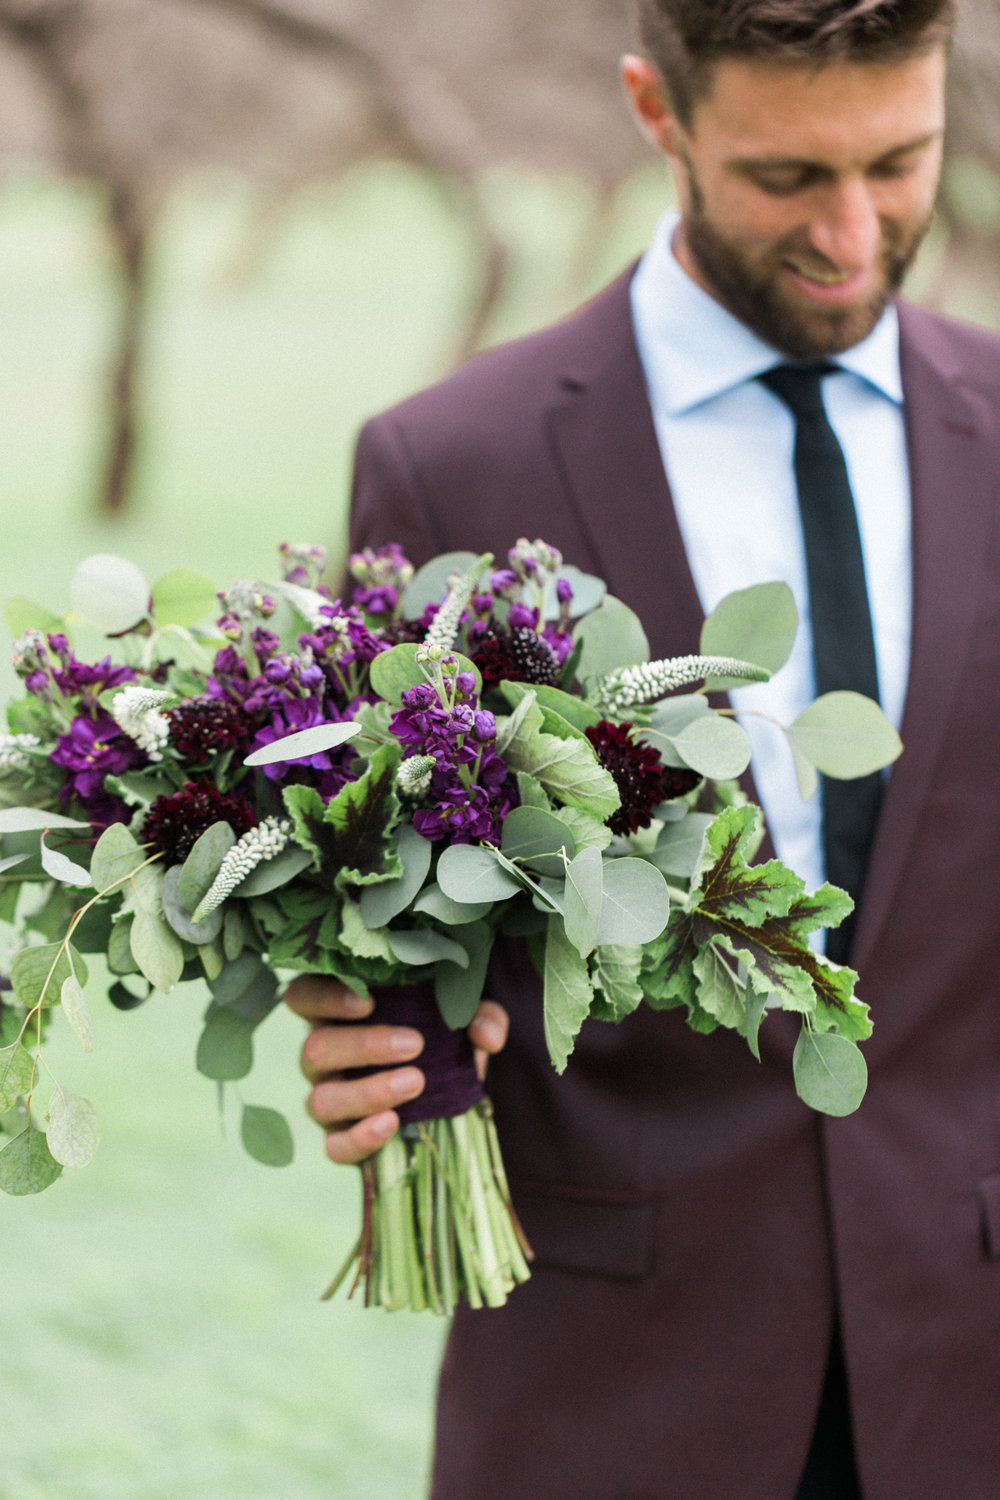 Groom smiling, holding bride's bouquet